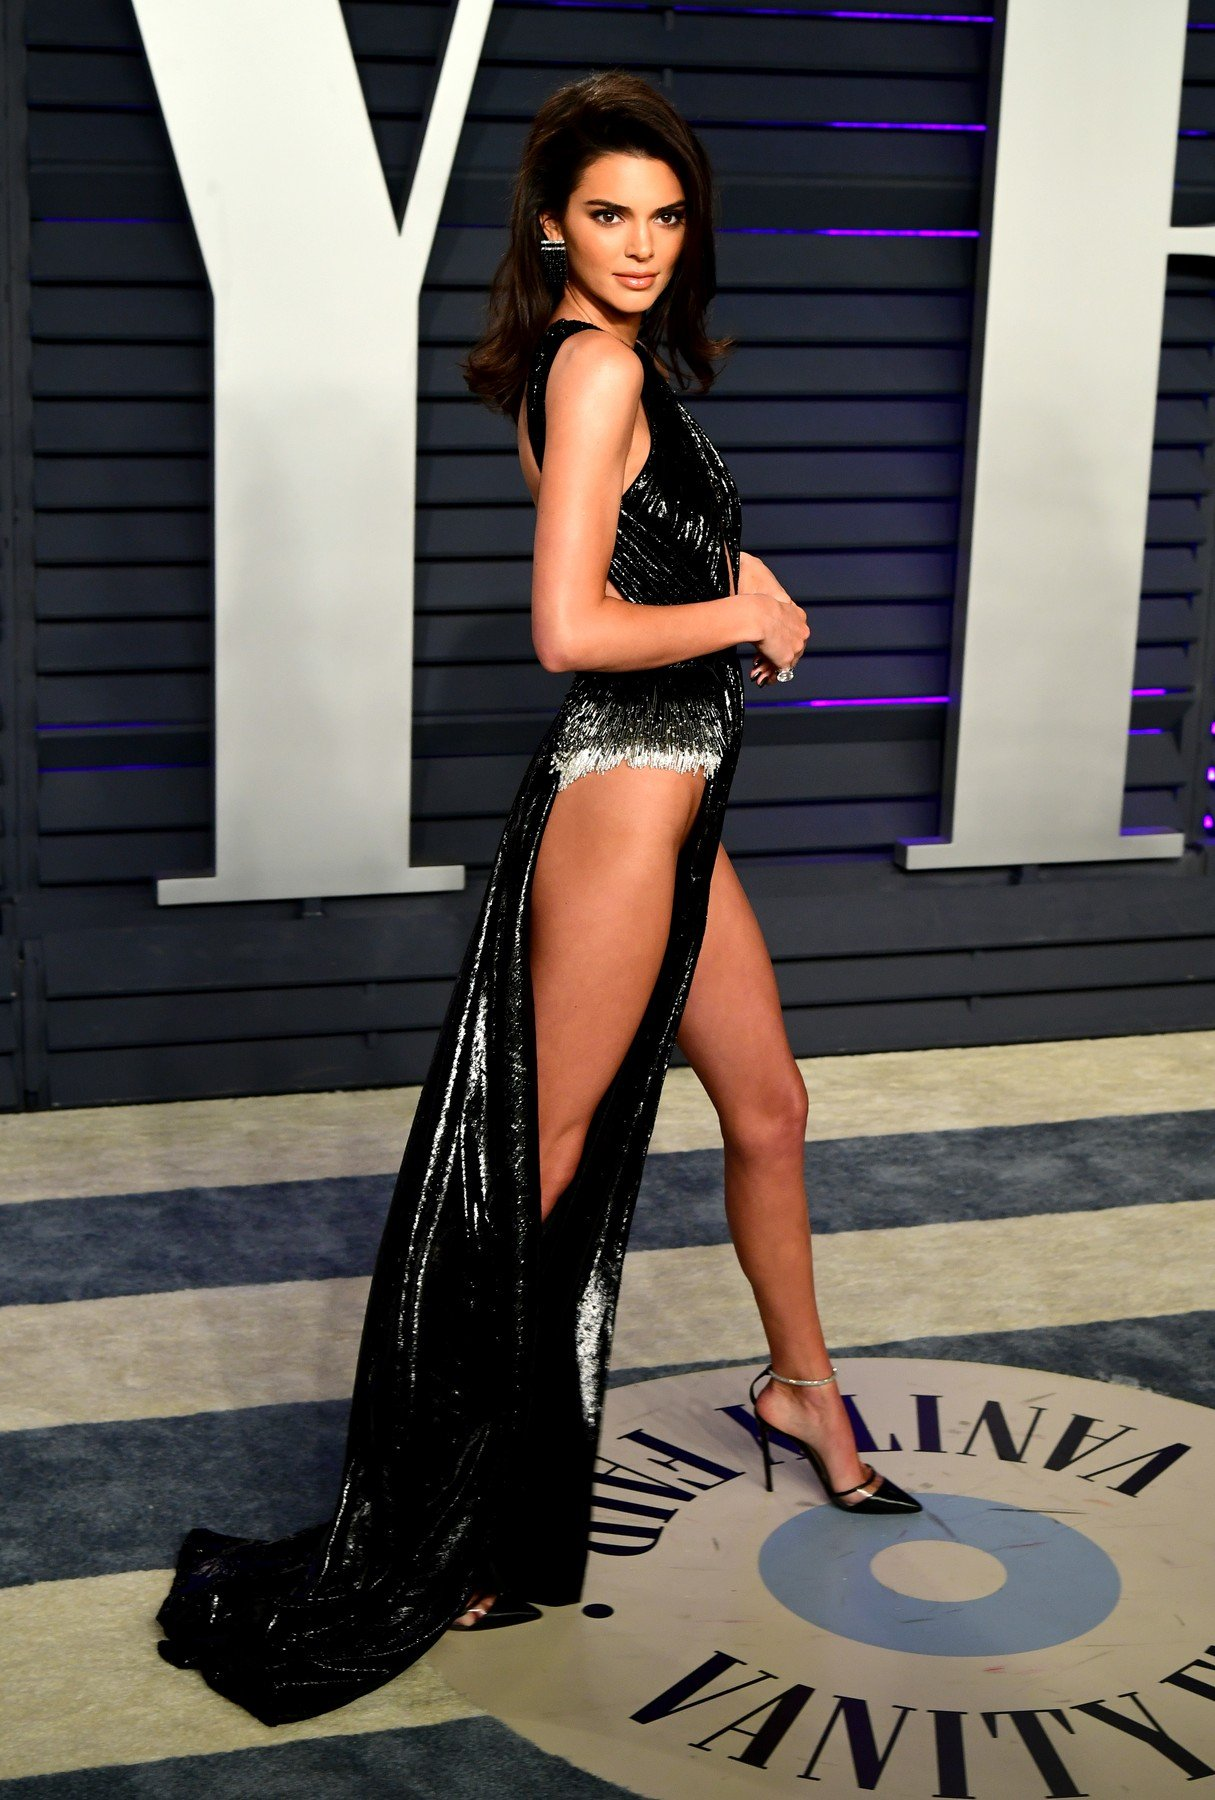 Kendall Jenner attending the Vanity Fair Oscar Party held at the Wallis Annenberg Center for the Performing Arts in Beverly Hills, Los Angeles, California, USA., Image: 415781900, License: Rights-managed, Restrictions: , Model Release: no, Credit line: Profimedia, Press Association